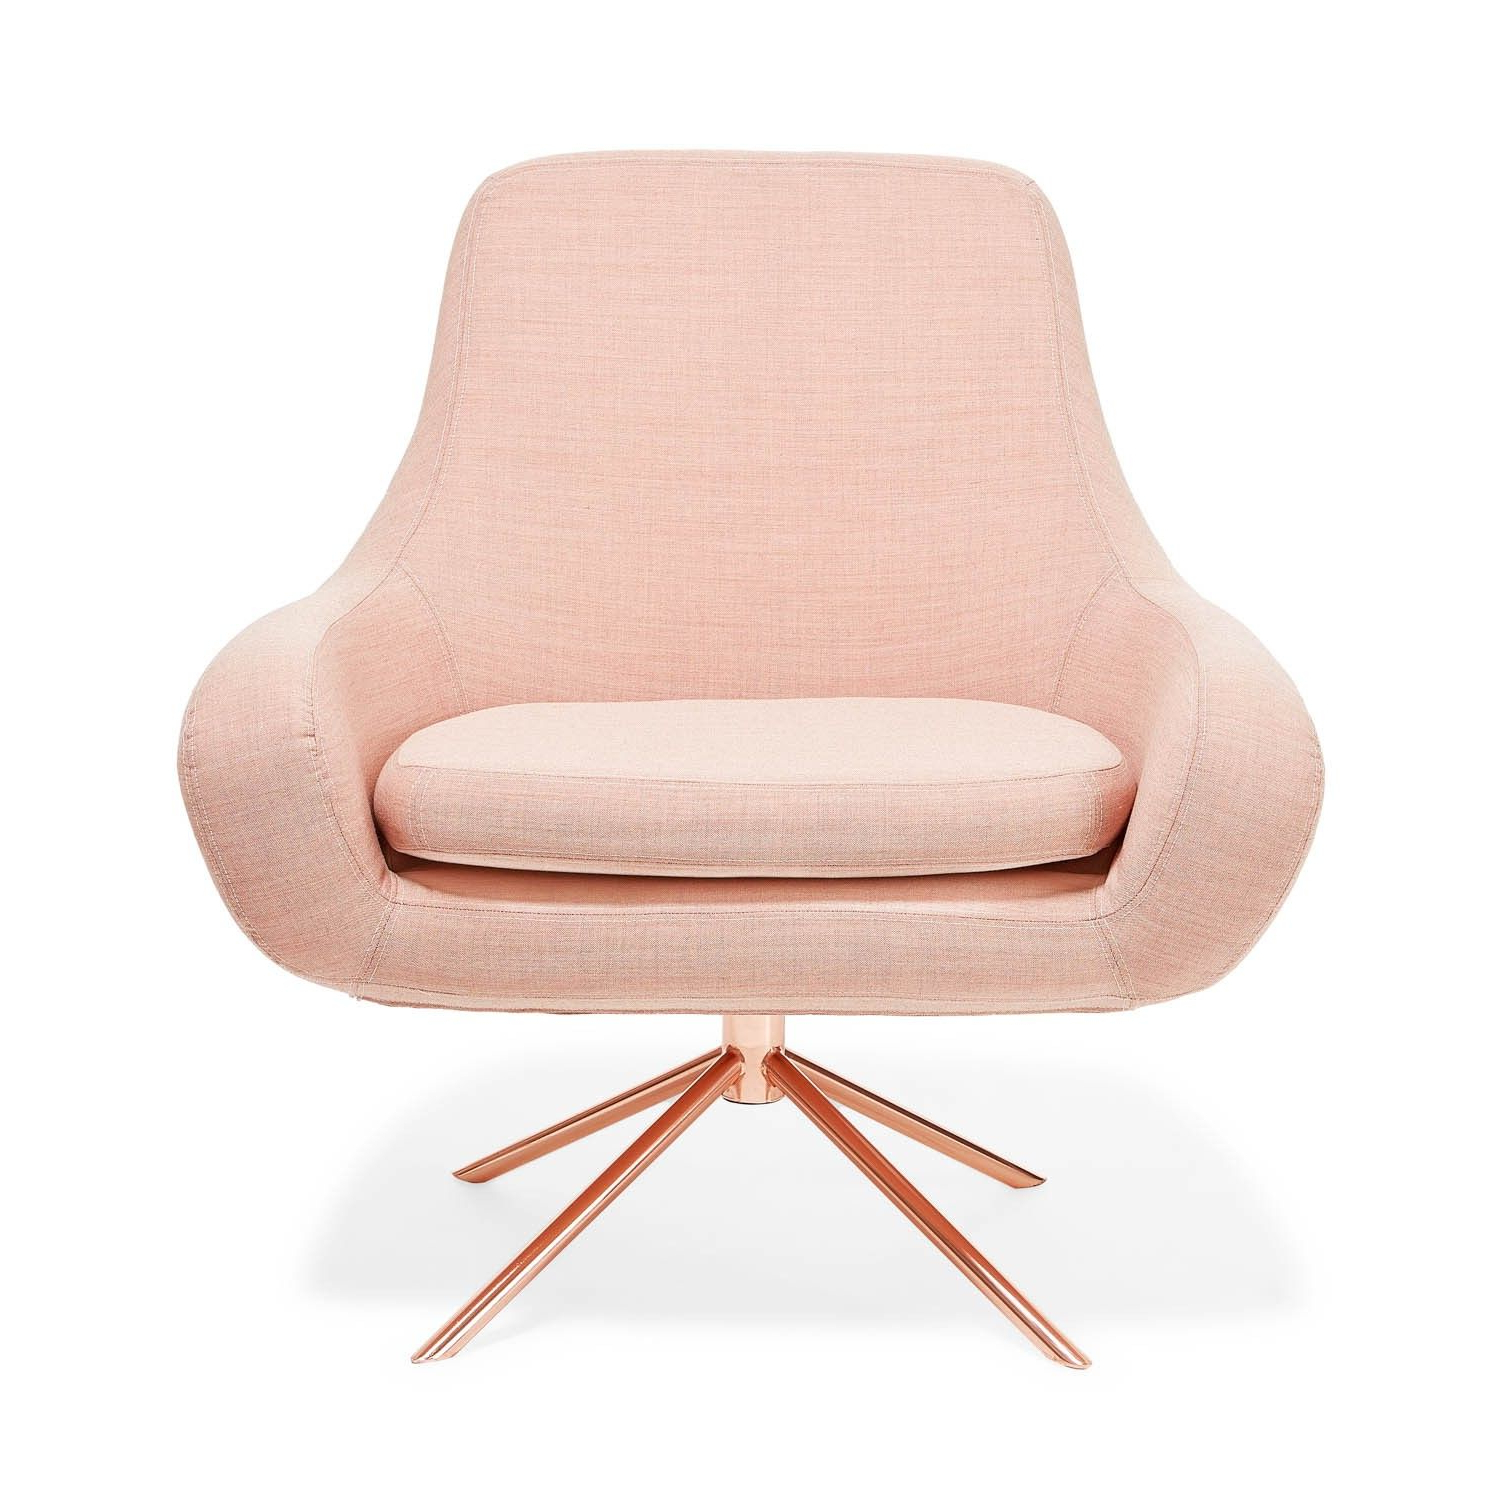 Drawing Inspiration From Mid Century Modern Styles, Architects Busk Throughout Favorite Chill Swivel Chairs With Metal Base (View 10 of 20)